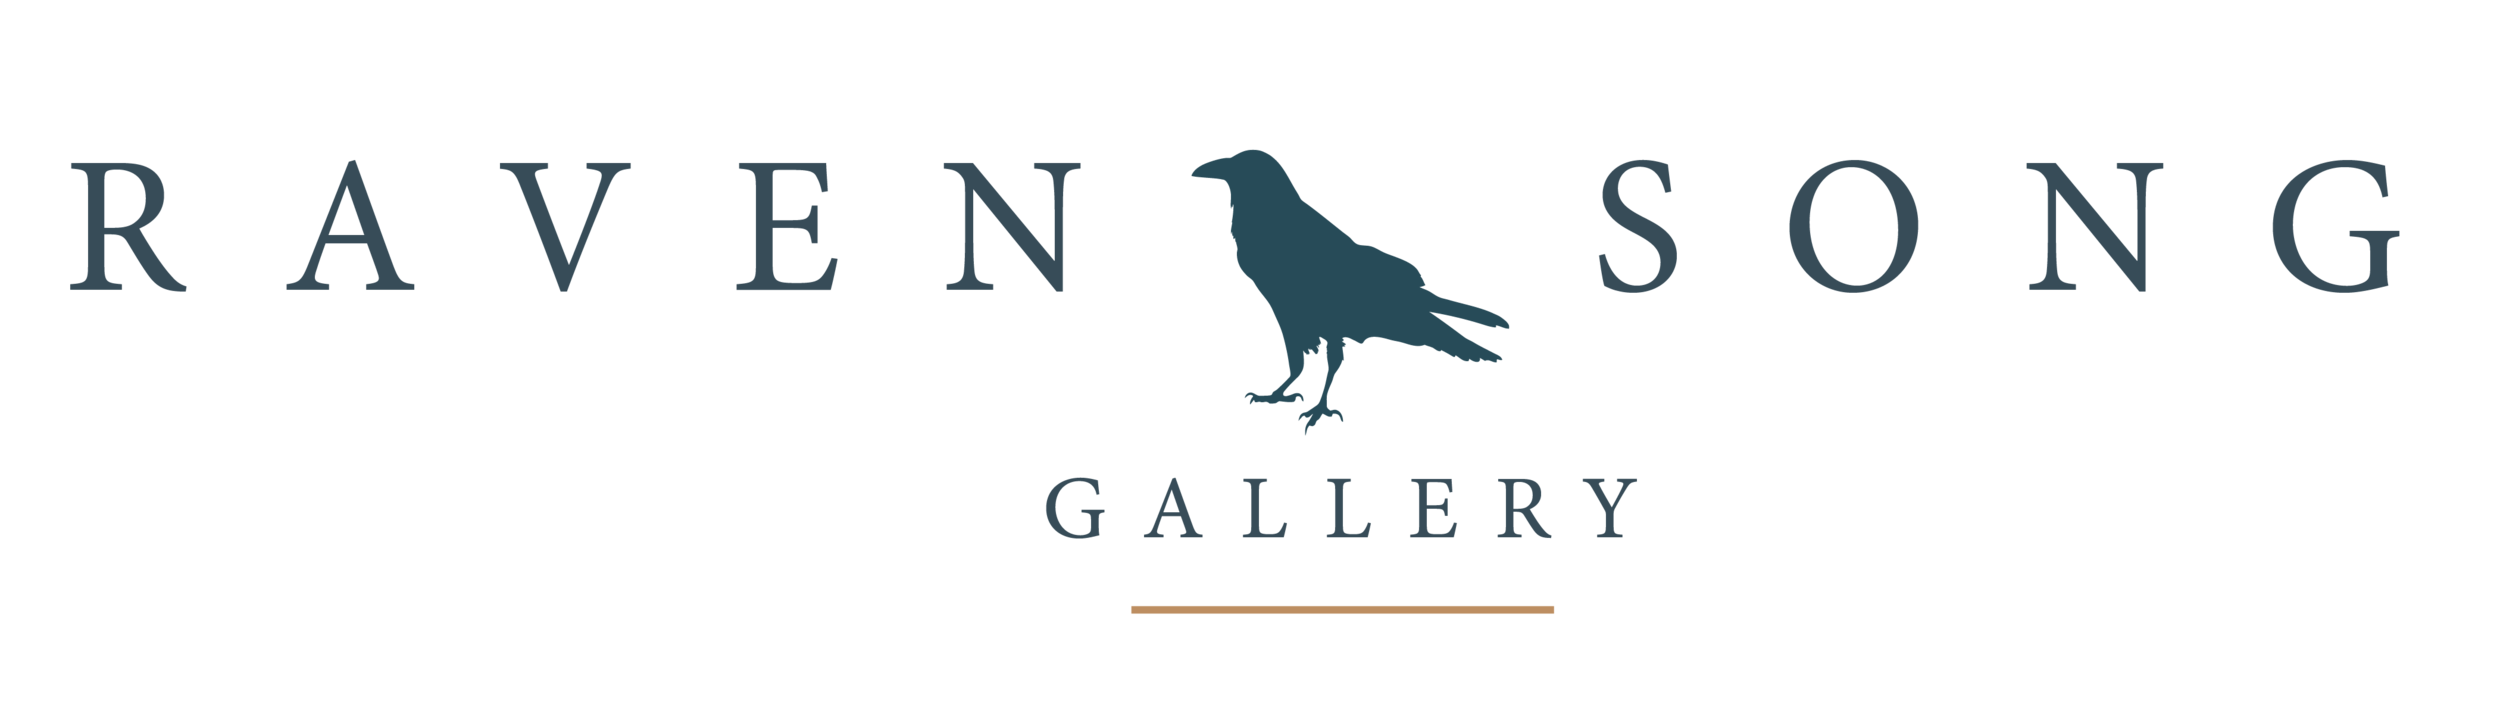 Raven Song Gallery